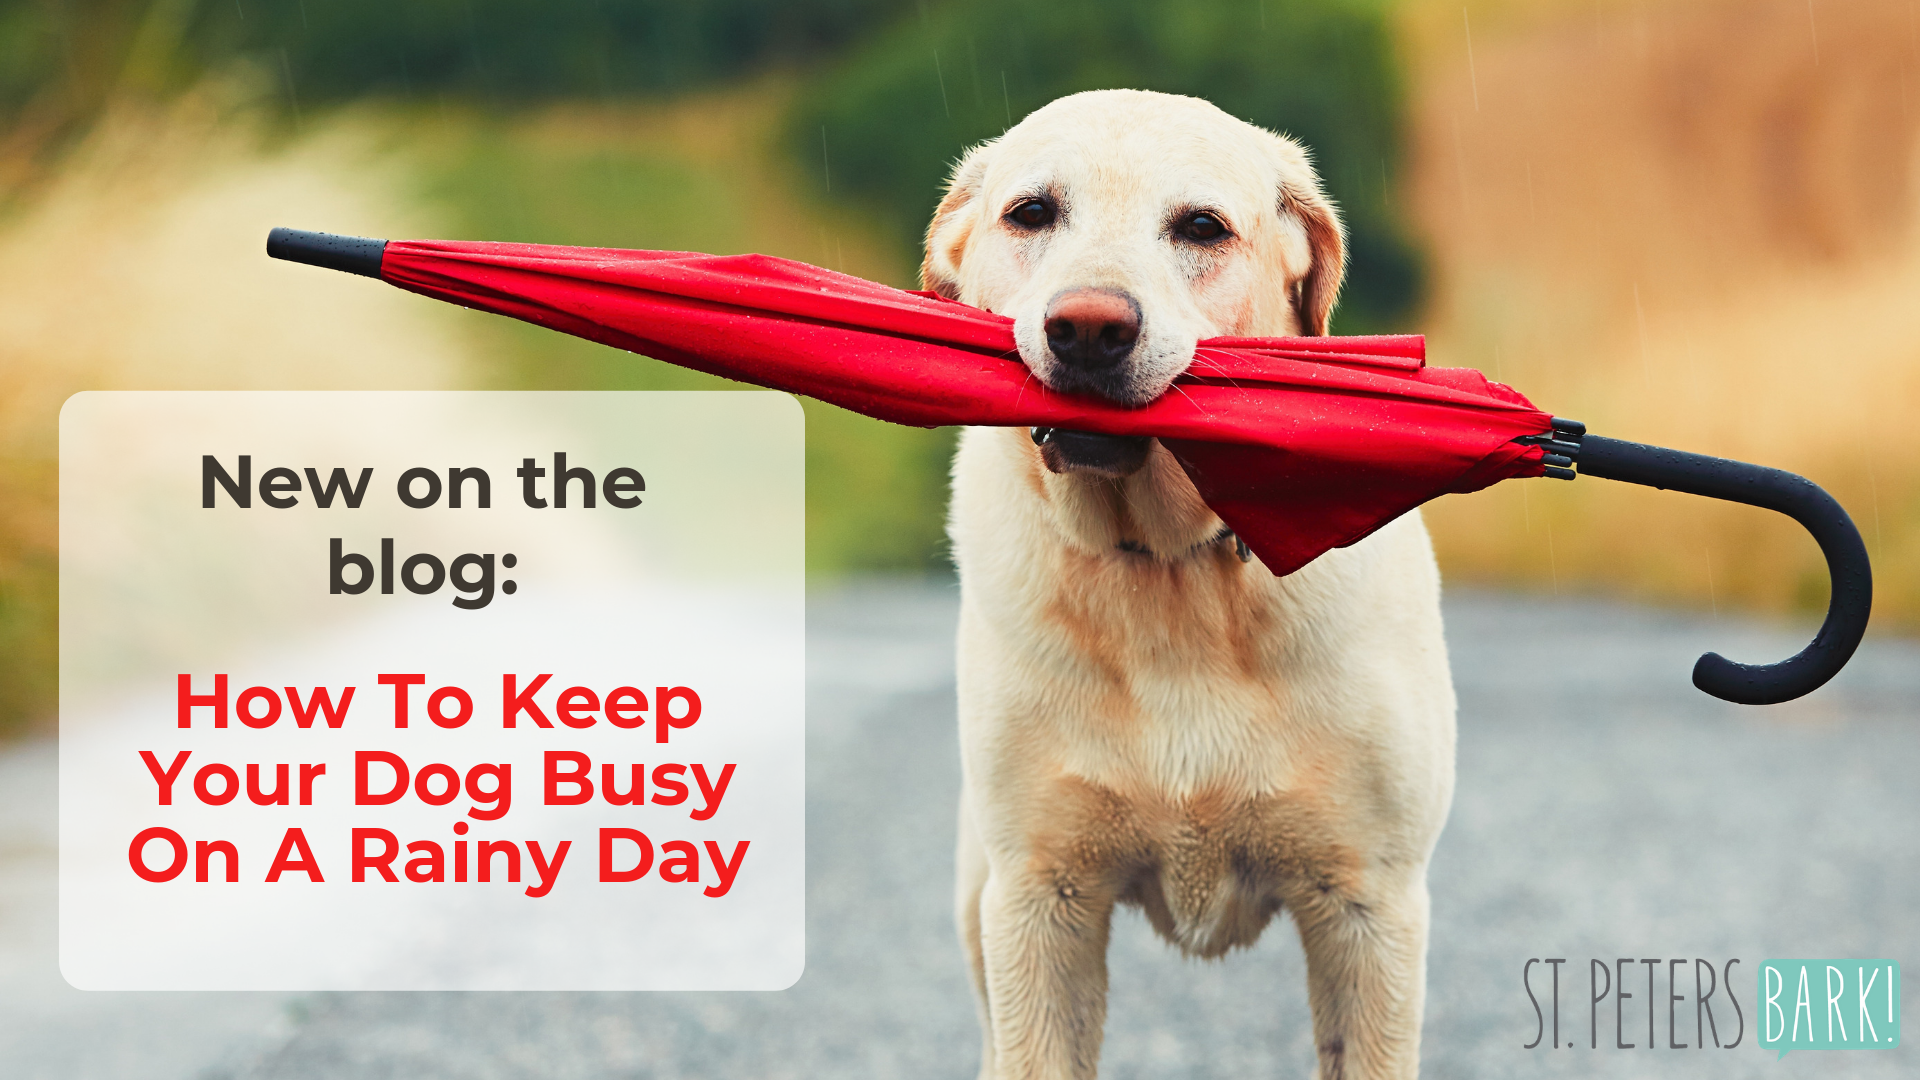 How To Keep Your Dog Busy On A Rainy Day: 4 Trainer Approved Tips